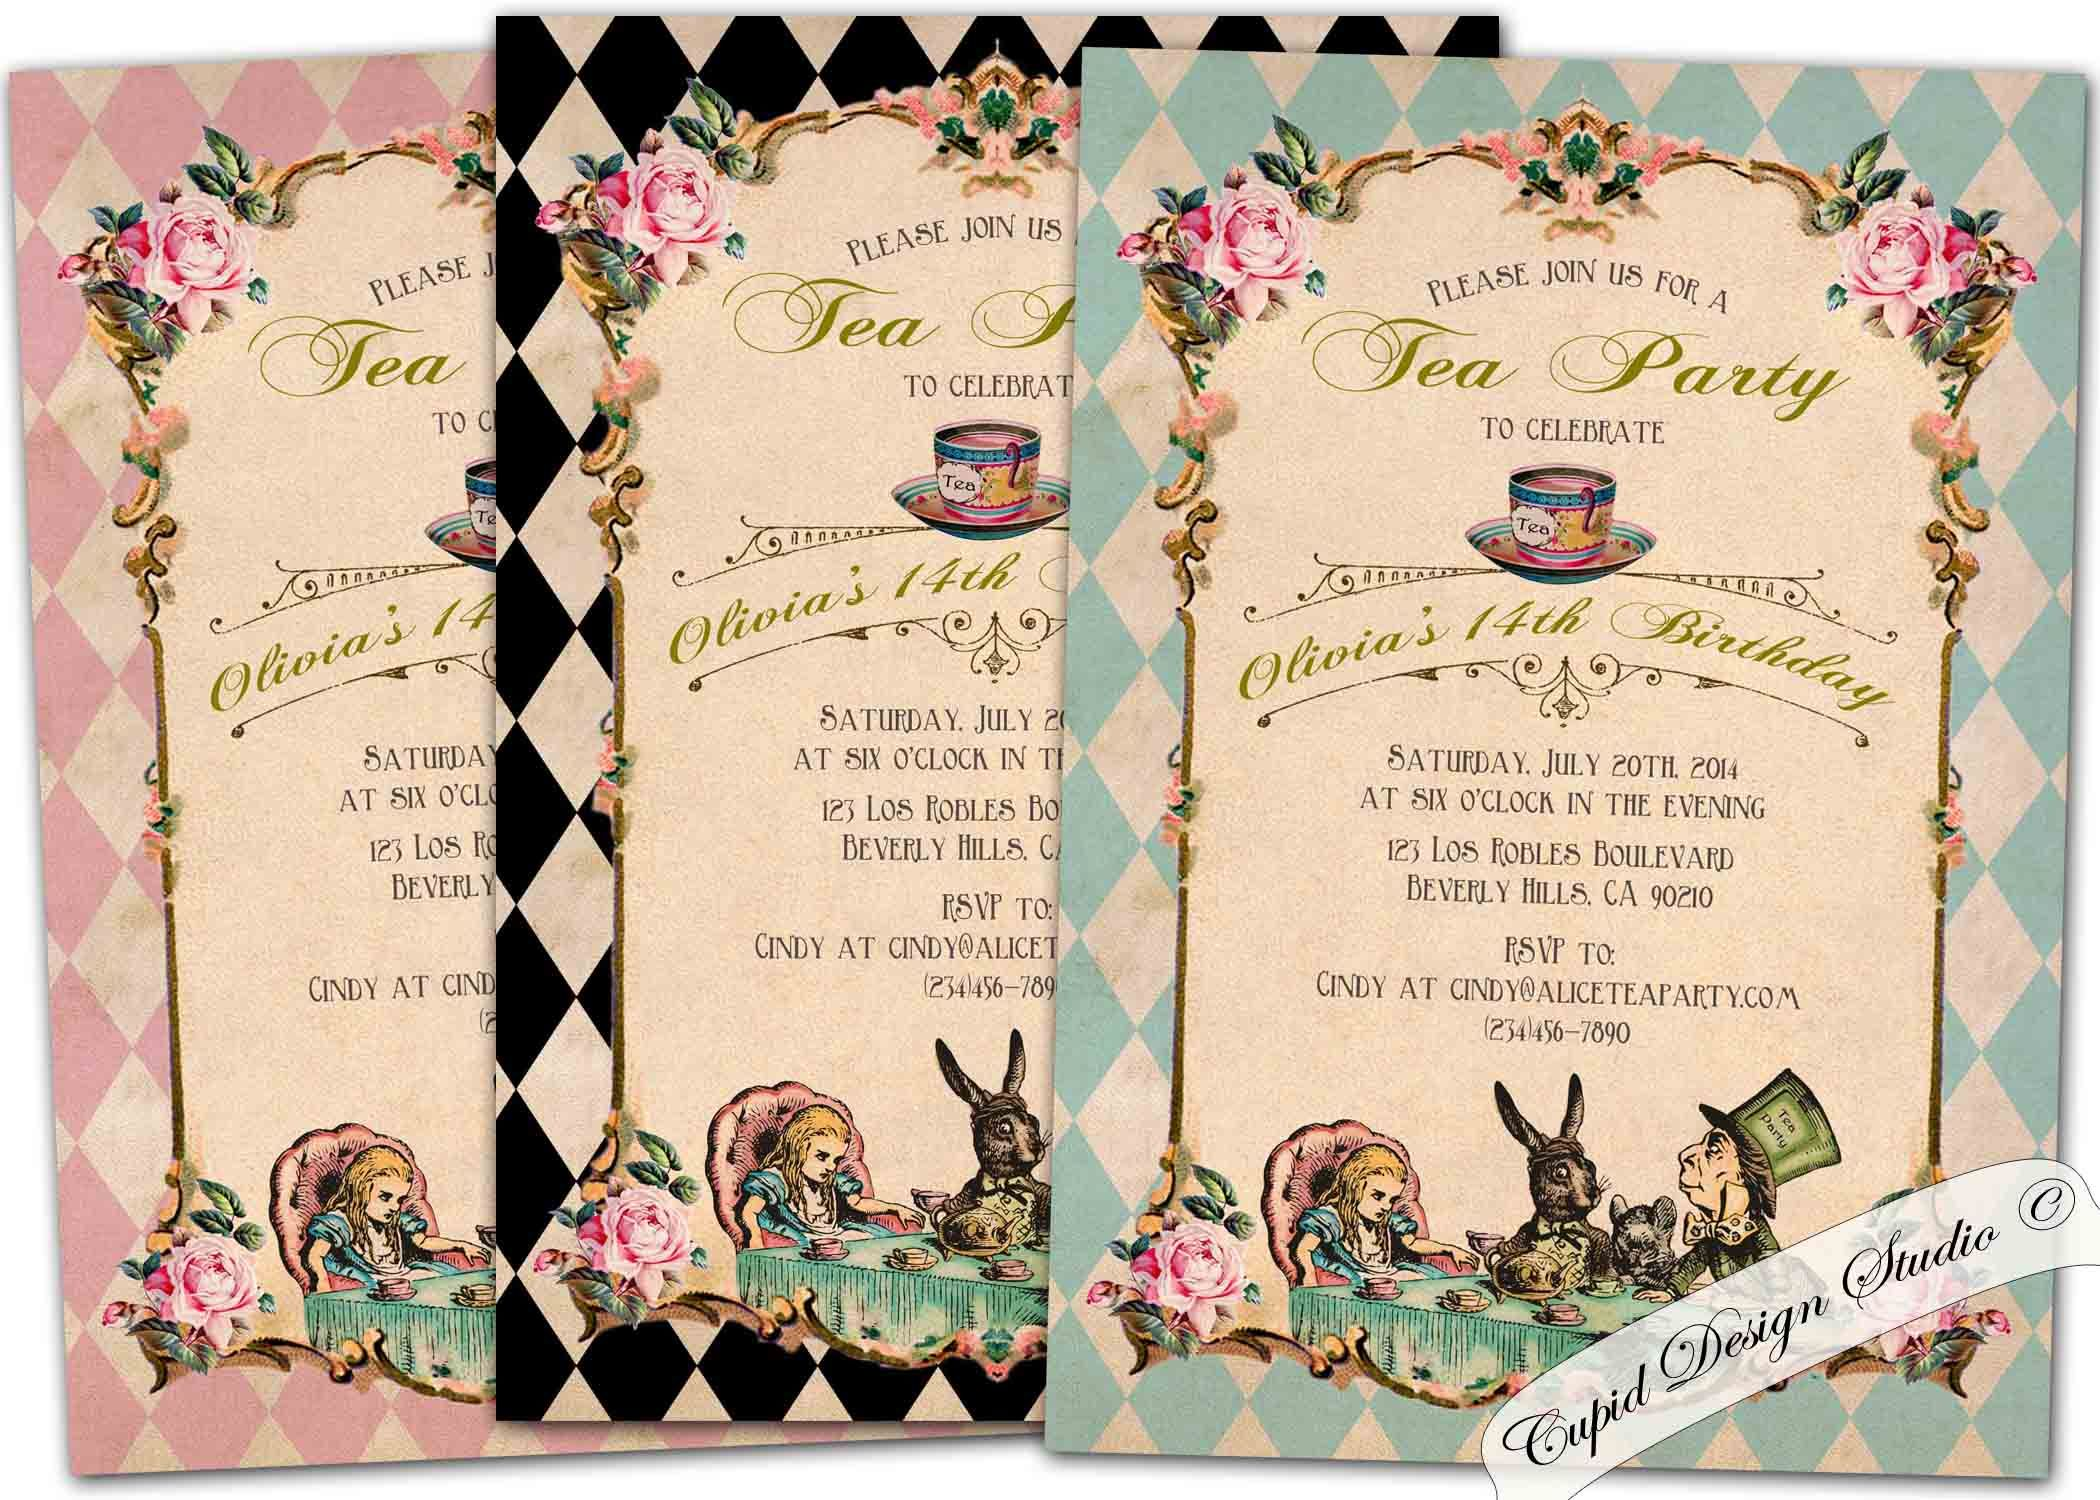 mad hatter teparty invitations pinterest%0A Alice in wonderland invitation printable Alice and wonderland invitation Mad  hatter invitations Alice in wonderland invite